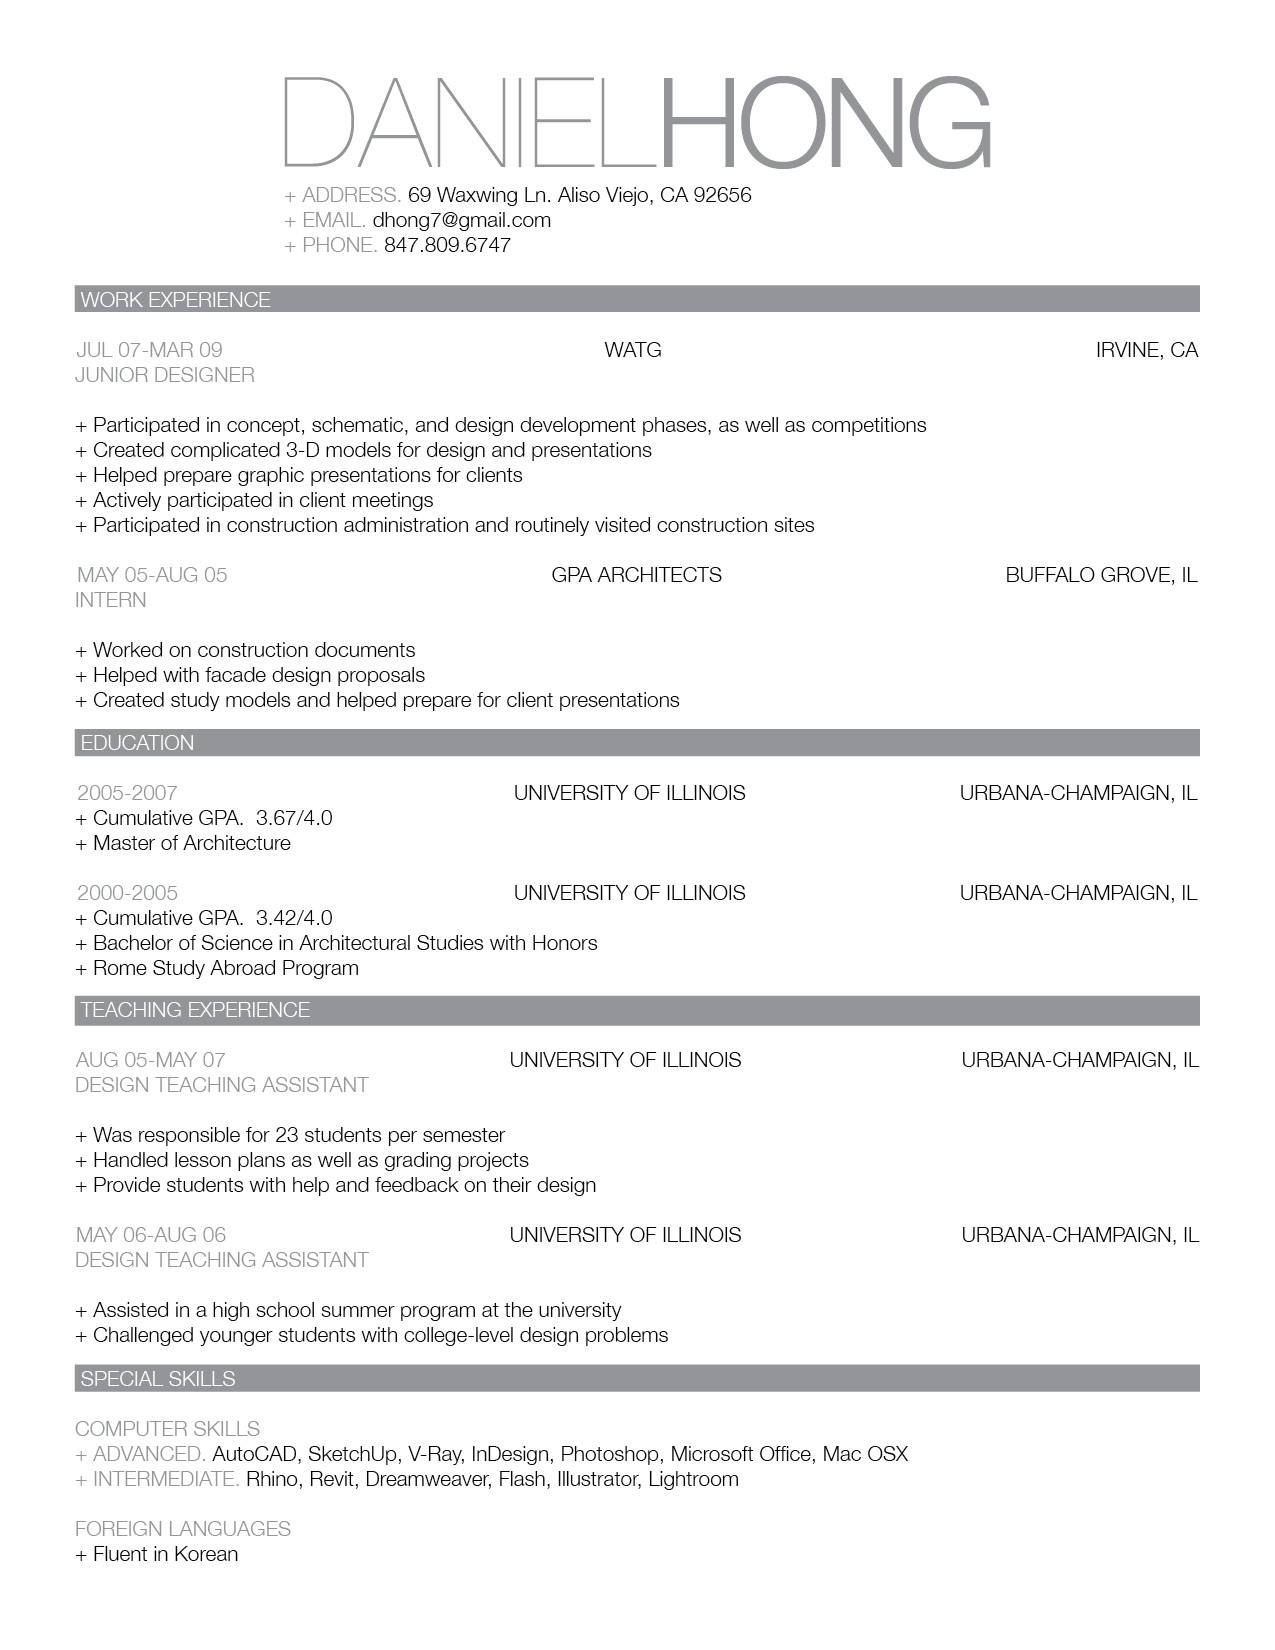 Opposenewapstandardsus  Fascinating Resume Chronological Basic Basic Sample Resume Cover Letter  With Interesting Simple  With Captivating Example Of Objective In Resume Also Reference Template For Resume In Addition Resume For Recent College Graduate And Microsoft Word Template Resume As Well As Server Resume Objective Additionally Resume Rabbit Review From Writeupdonwebhomeipnet With Opposenewapstandardsus  Interesting Resume Chronological Basic Basic Sample Resume Cover Letter  With Captivating Simple  And Fascinating Example Of Objective In Resume Also Reference Template For Resume In Addition Resume For Recent College Graduate From Writeupdonwebhomeipnet